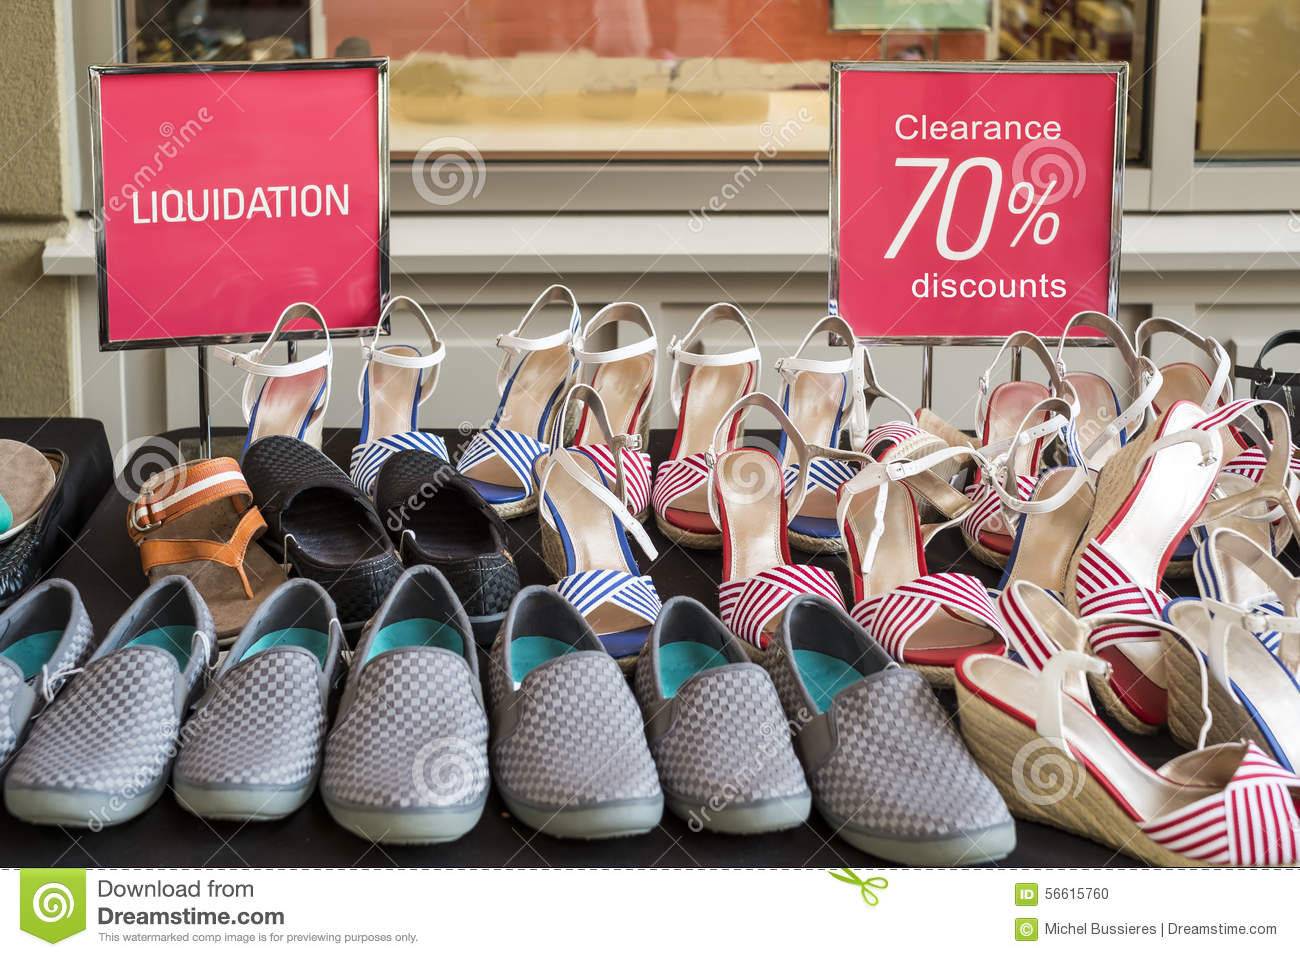 Shoe discount editorial image. Image of shoes 67a9a3cd9